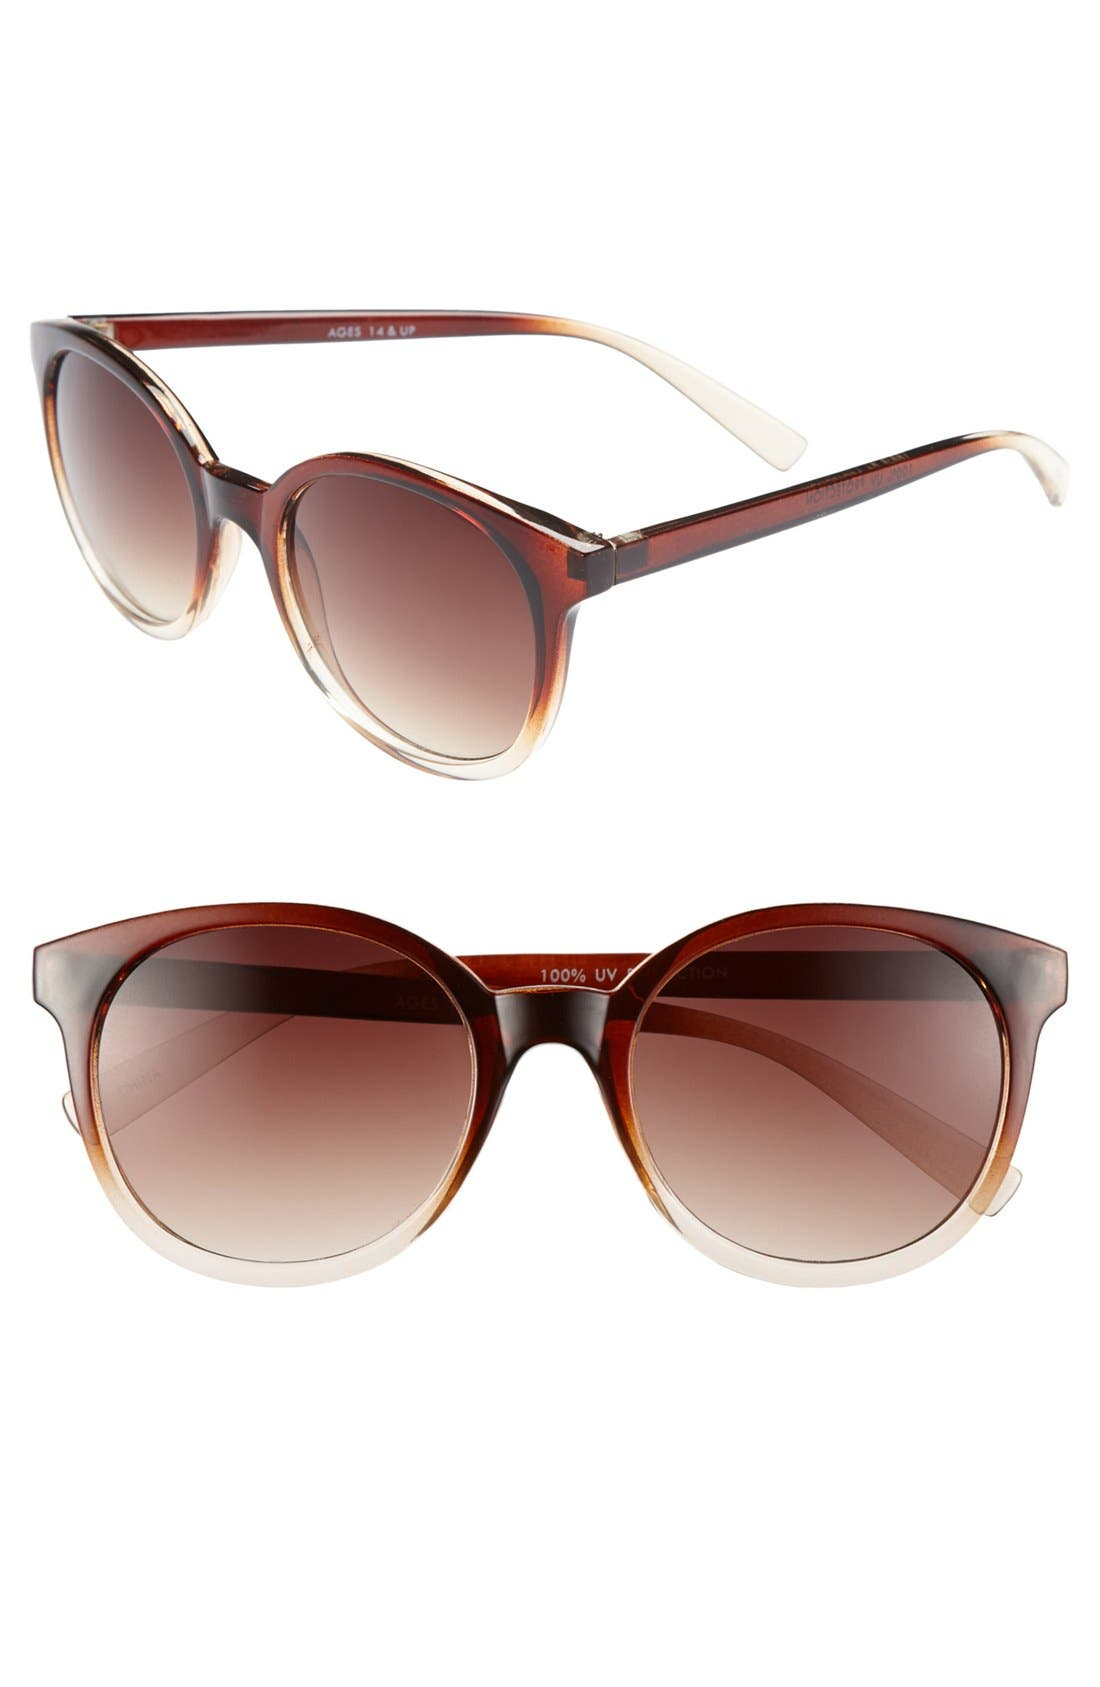 Alternate Image 1 Selected - Fantas Eyes Ombré Frame Sunglasses (Juniors) (Online Only)